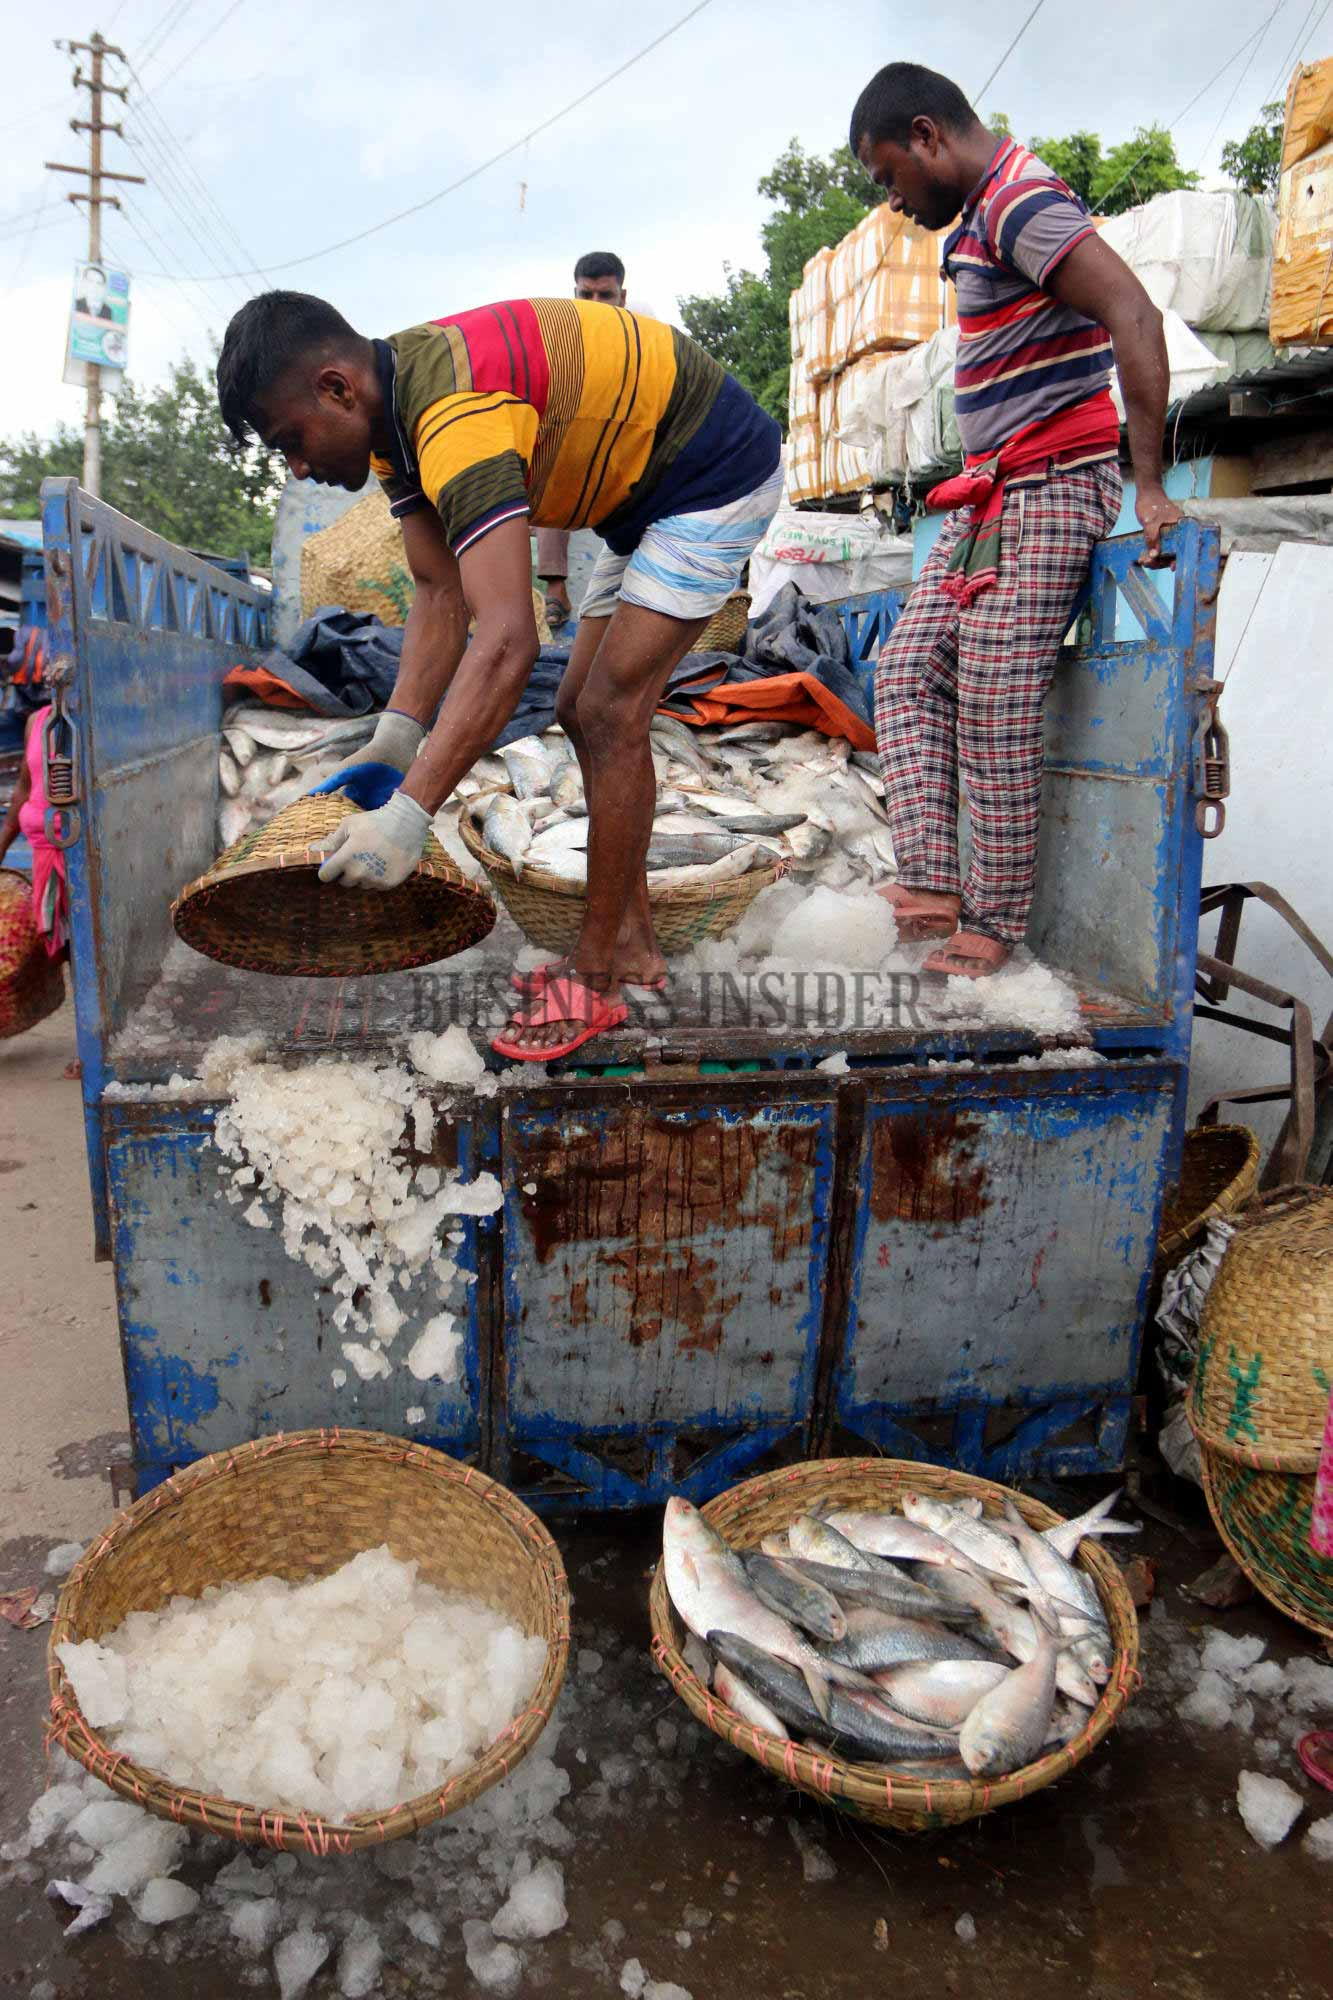 A man throws crushed ice in a basket while unloading fishes from a pickup van